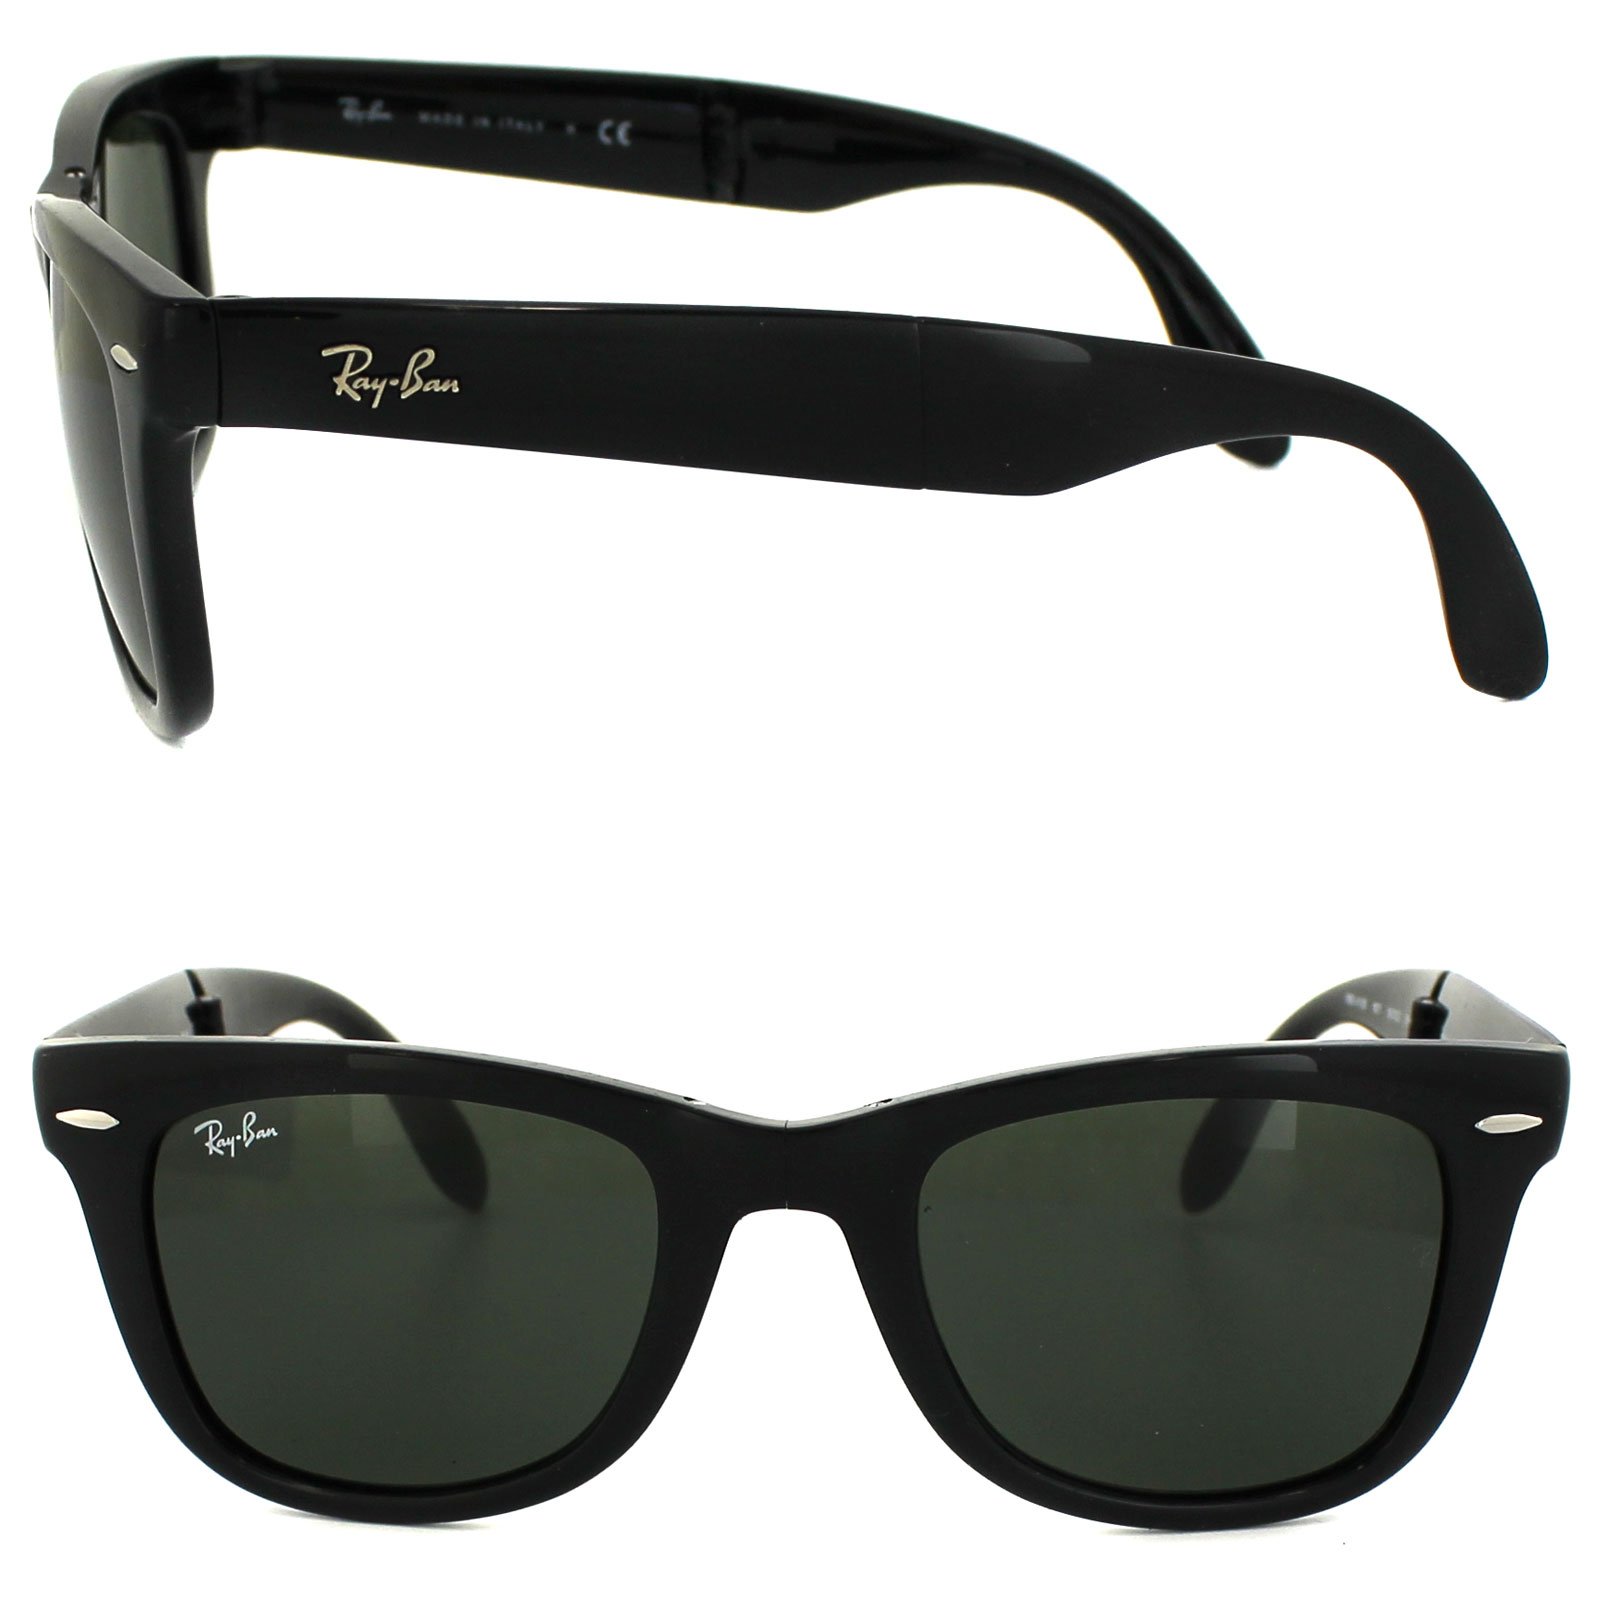 ray ban wayfarer folding i117  Ray-Ban Folding Wayfarer 4105 Sunglasses Thumbnail 2